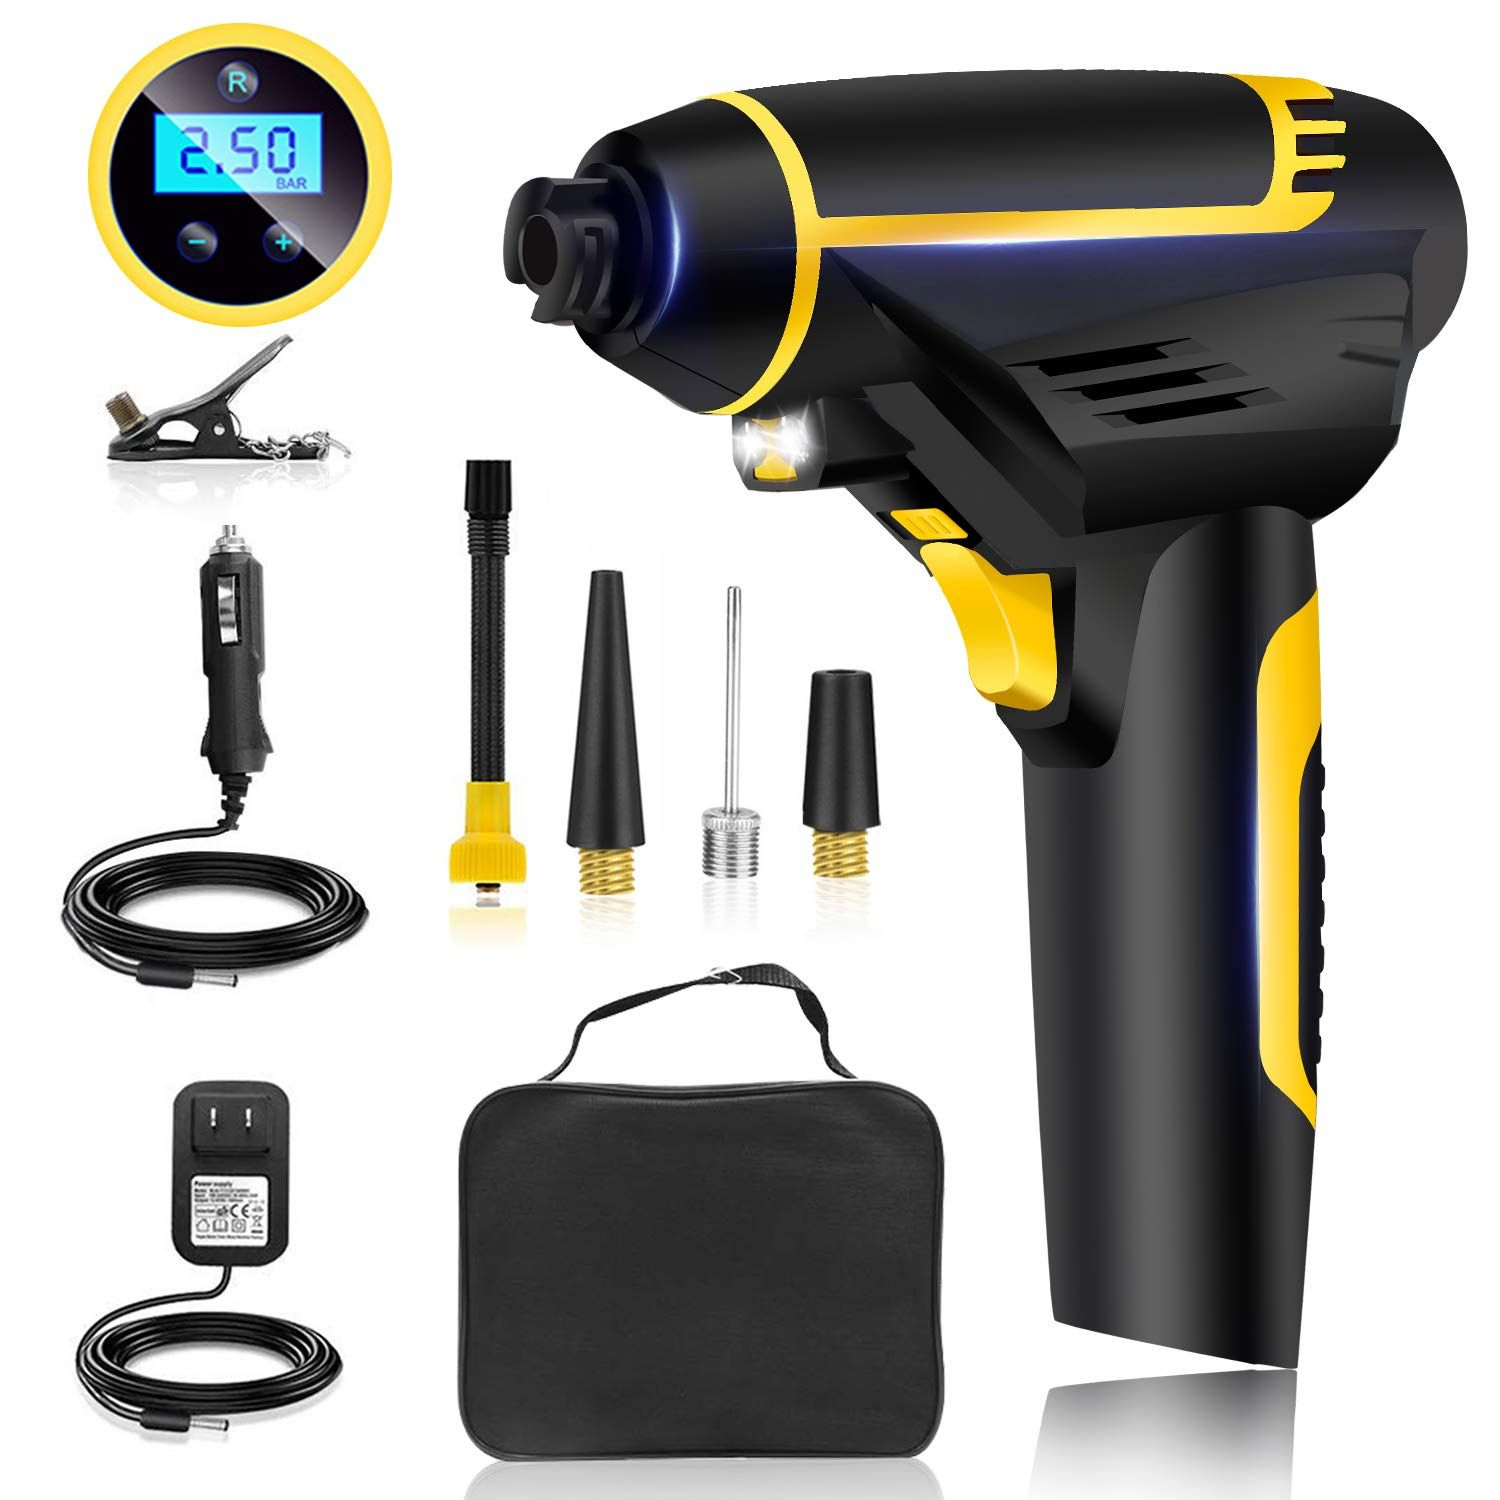 Automatic Cordless Tire Inflator Portable Hand Held